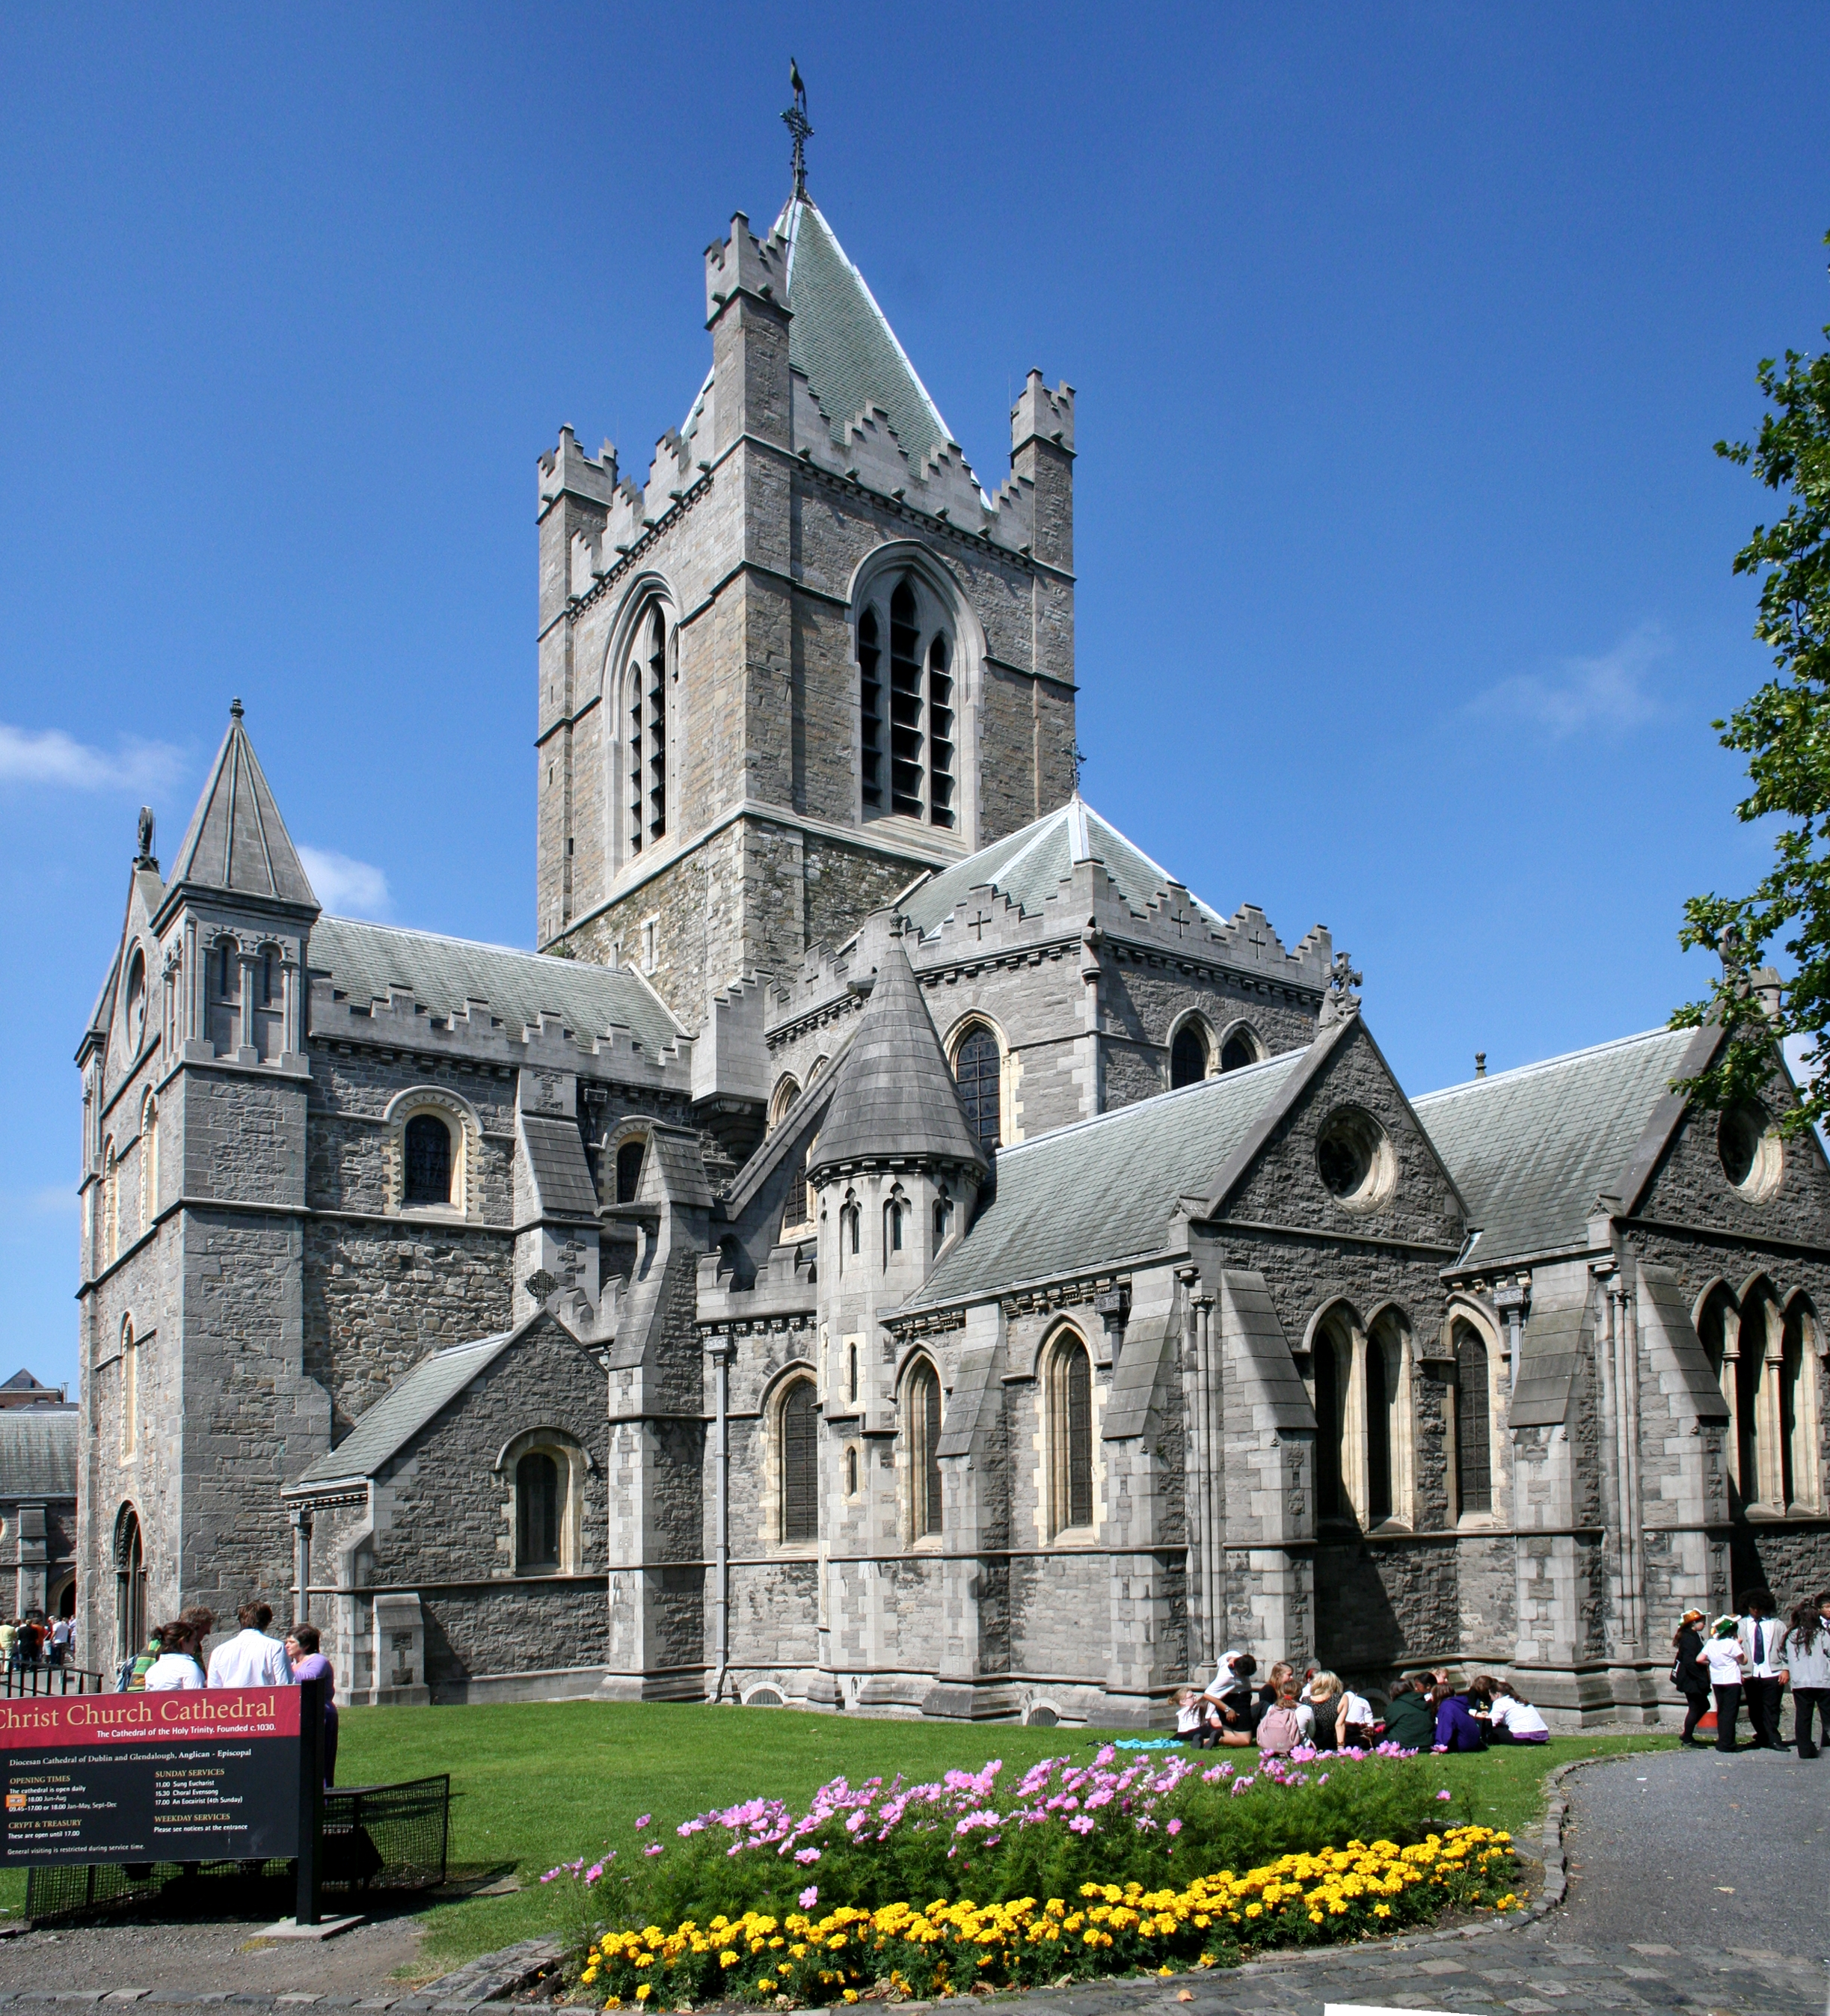 File:Christ Church Cathedral (Dublin).jpg - Wikimedia Commons